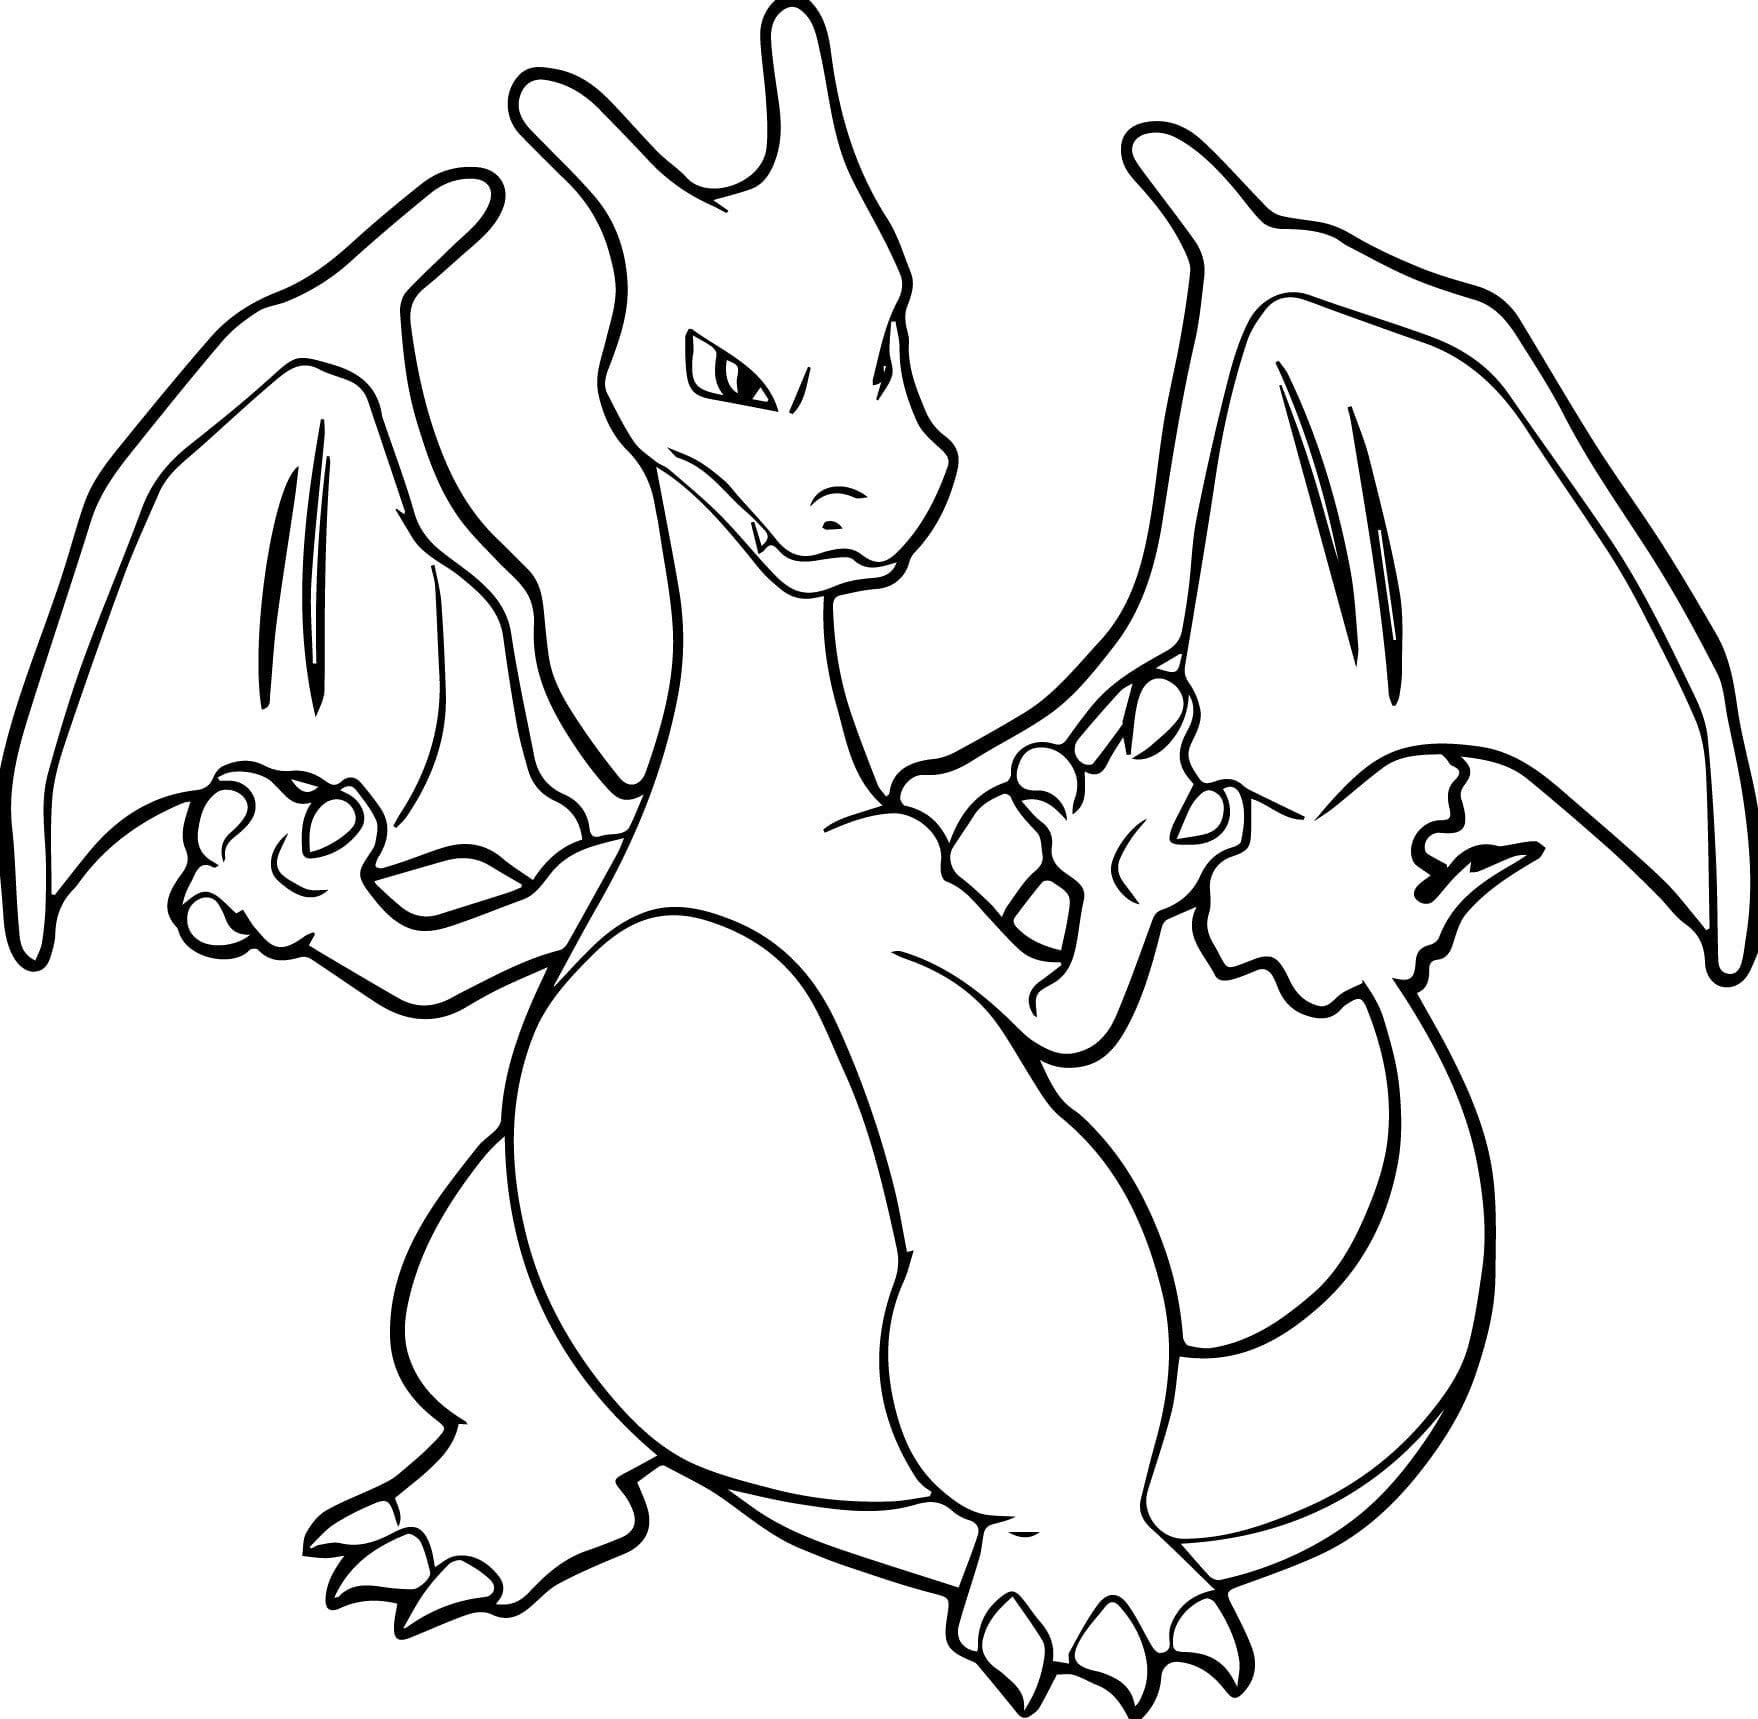 Impressive Charizard Coloring Pages Best Free Pokemon Page Full By